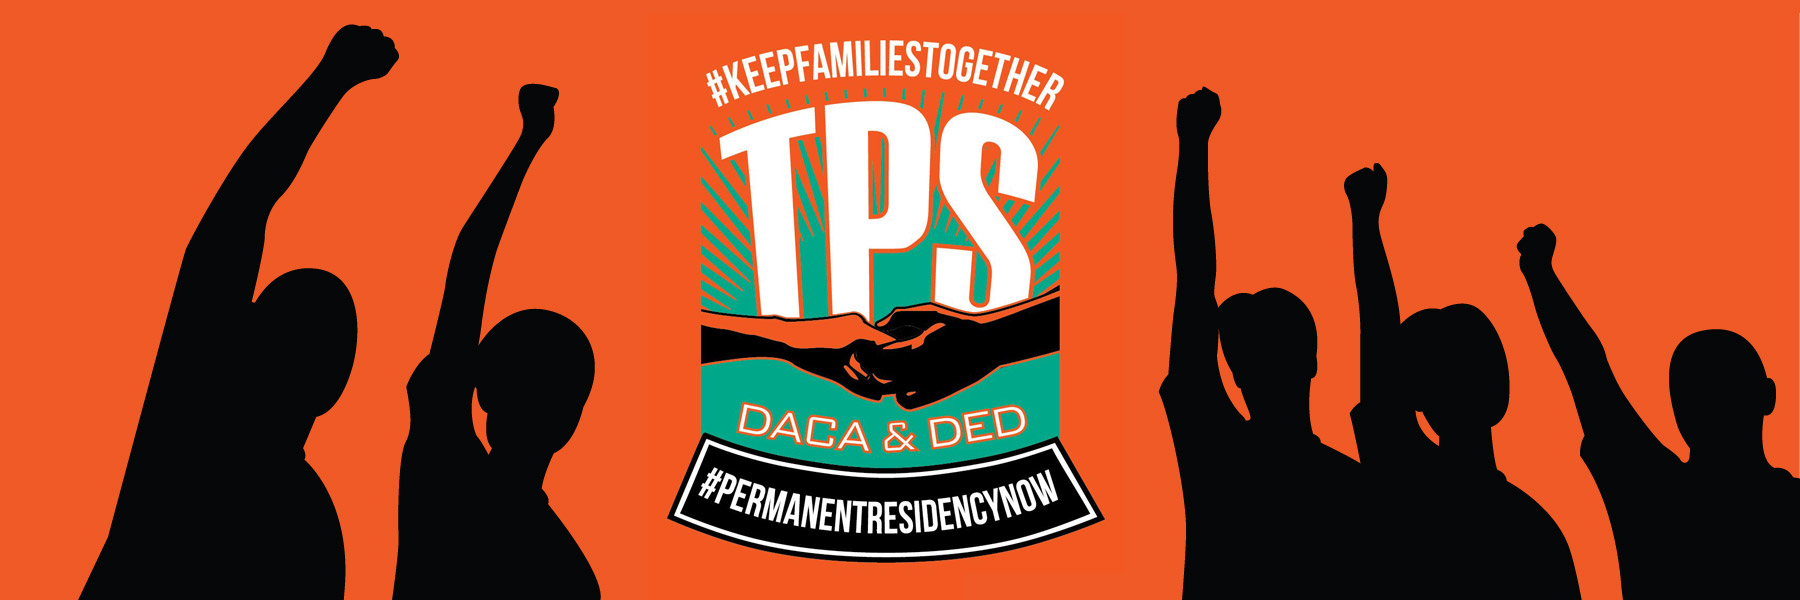 people-power-banner.TPS-DACA-DED